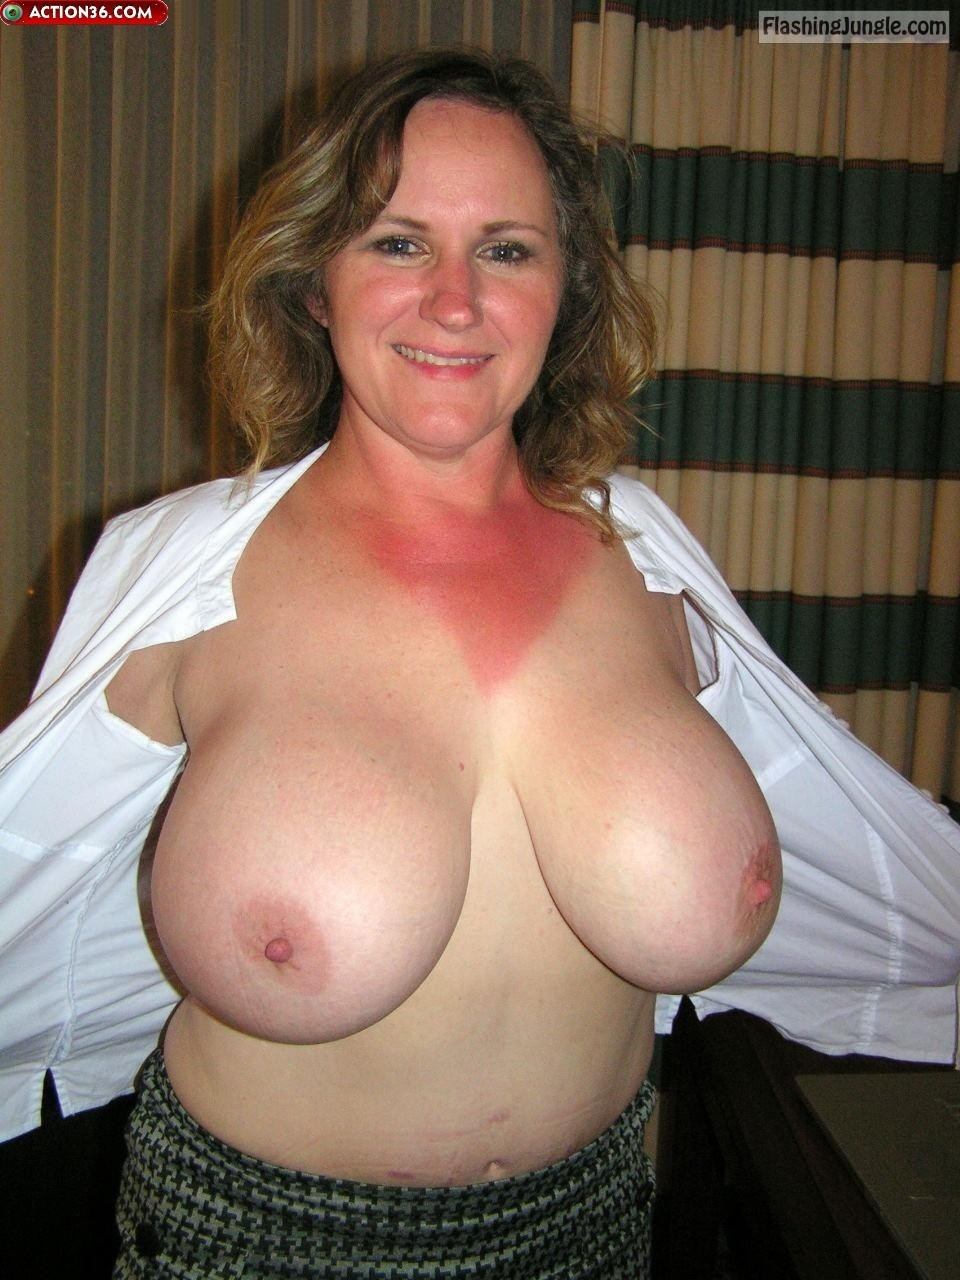 MILF Flashing Pics Boobs Flash Pics Bitch Flashing Pics